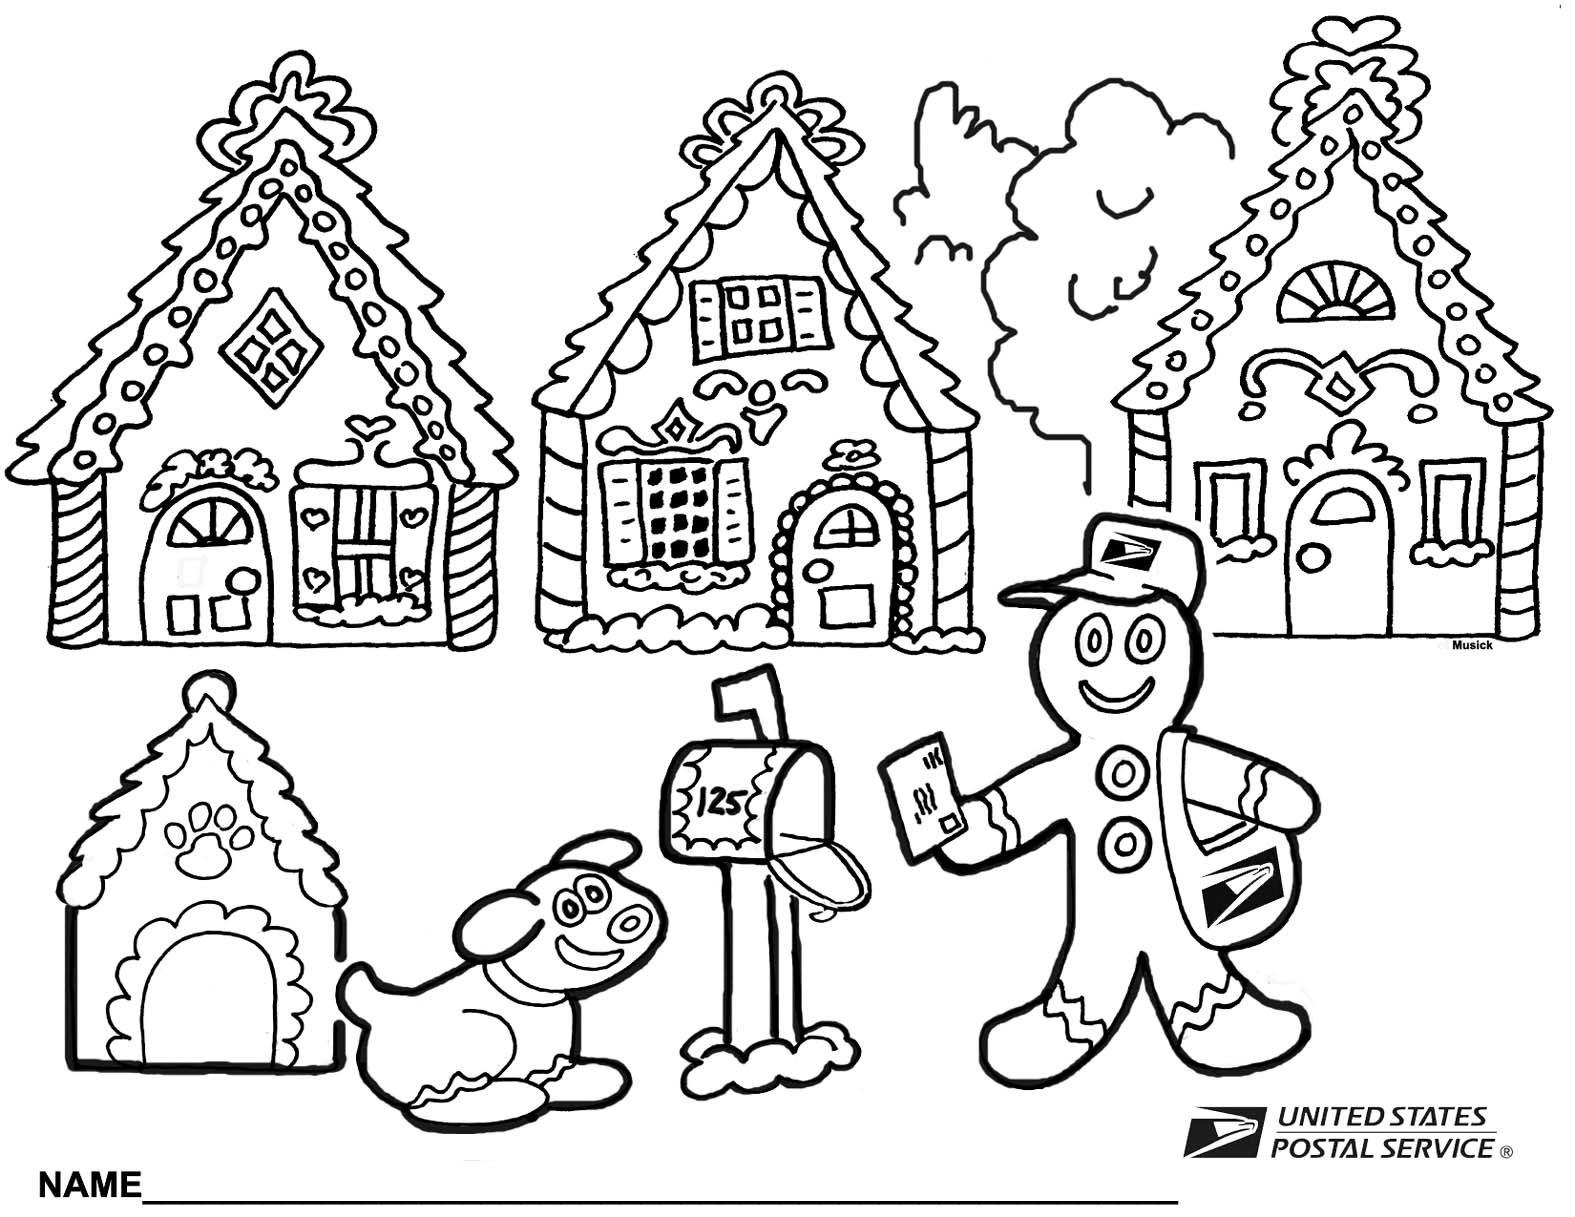 2013 Christmas Coloring Page | Your Postal Blog